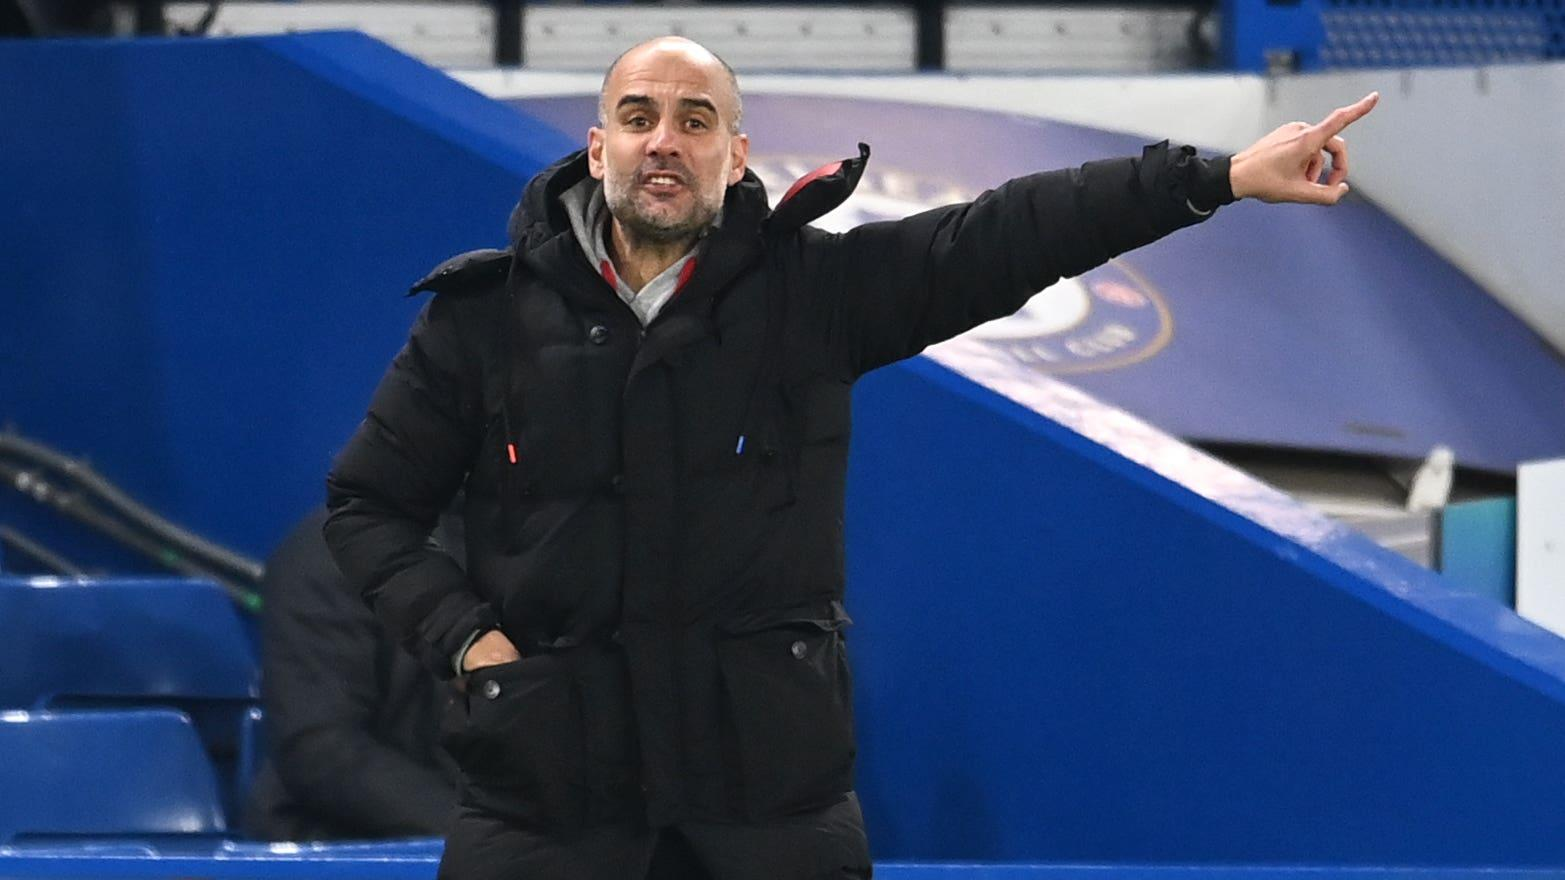 Unbeaten runs of no interest to Manchester City boss Pep Guardiola